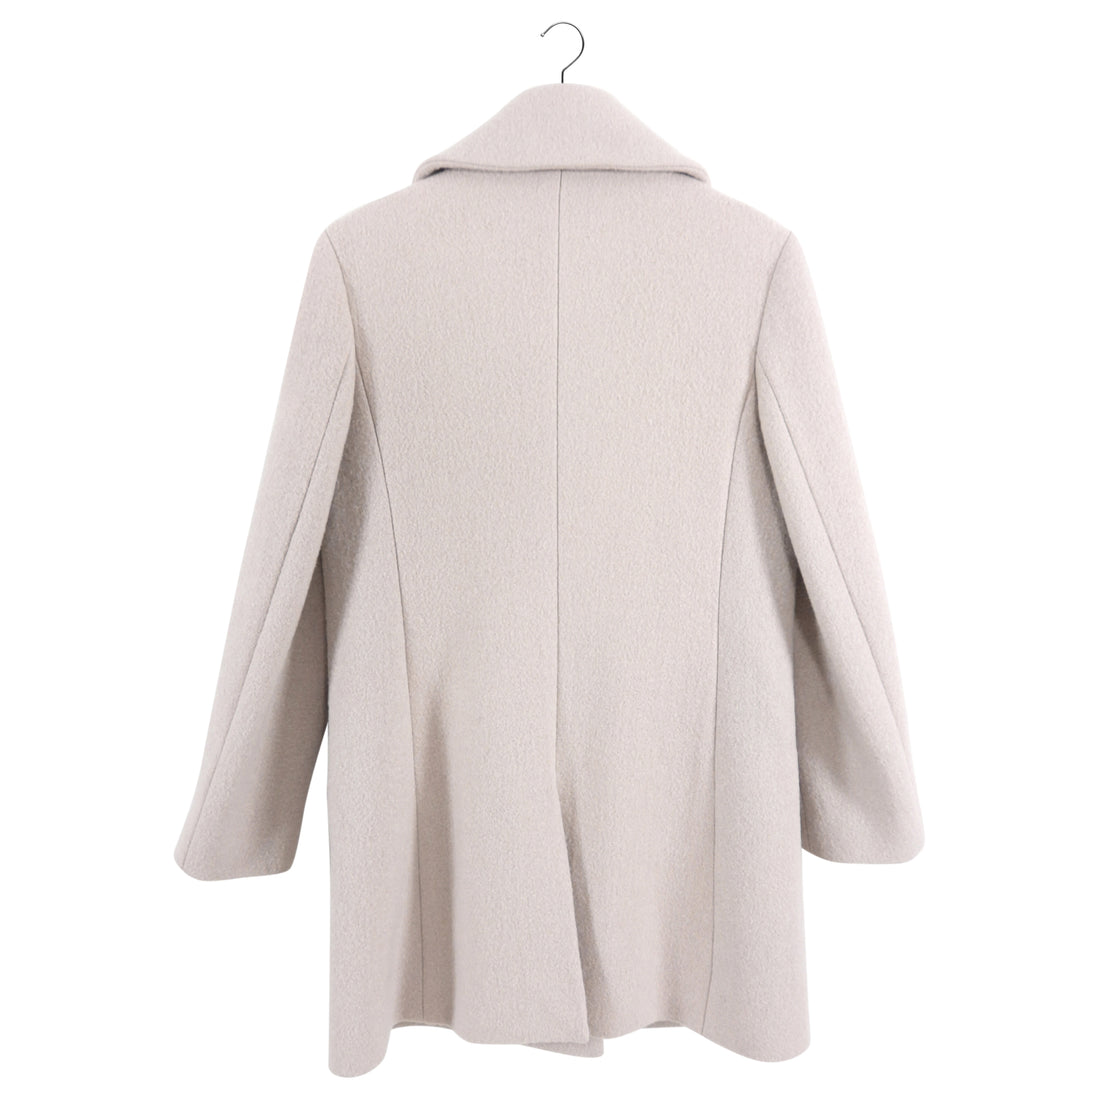 Phillip Lim Light Rose Quartz Wool Coat - 6